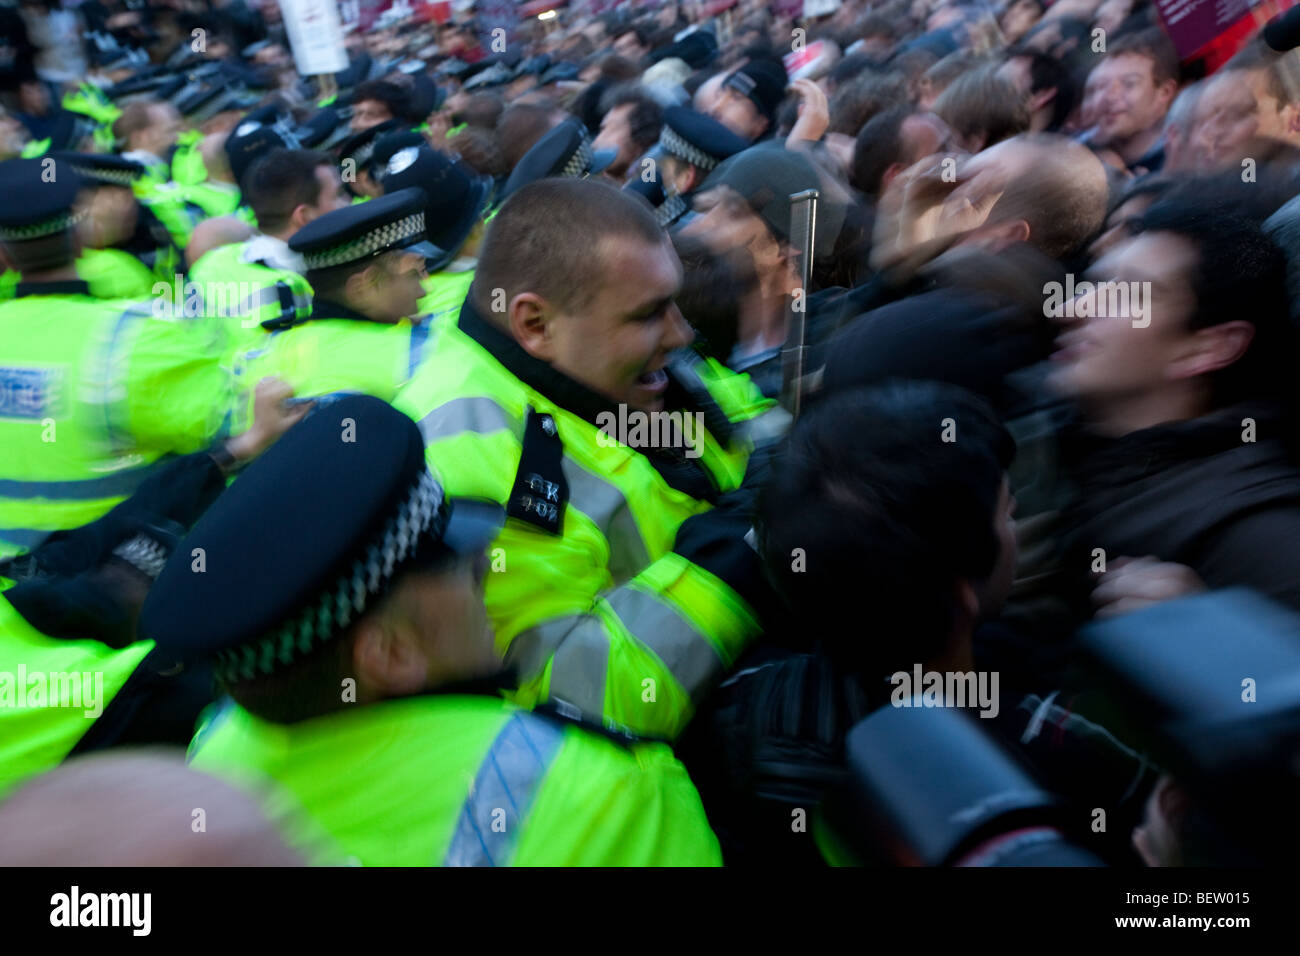 Protest outside BBC Television House - Stock Image